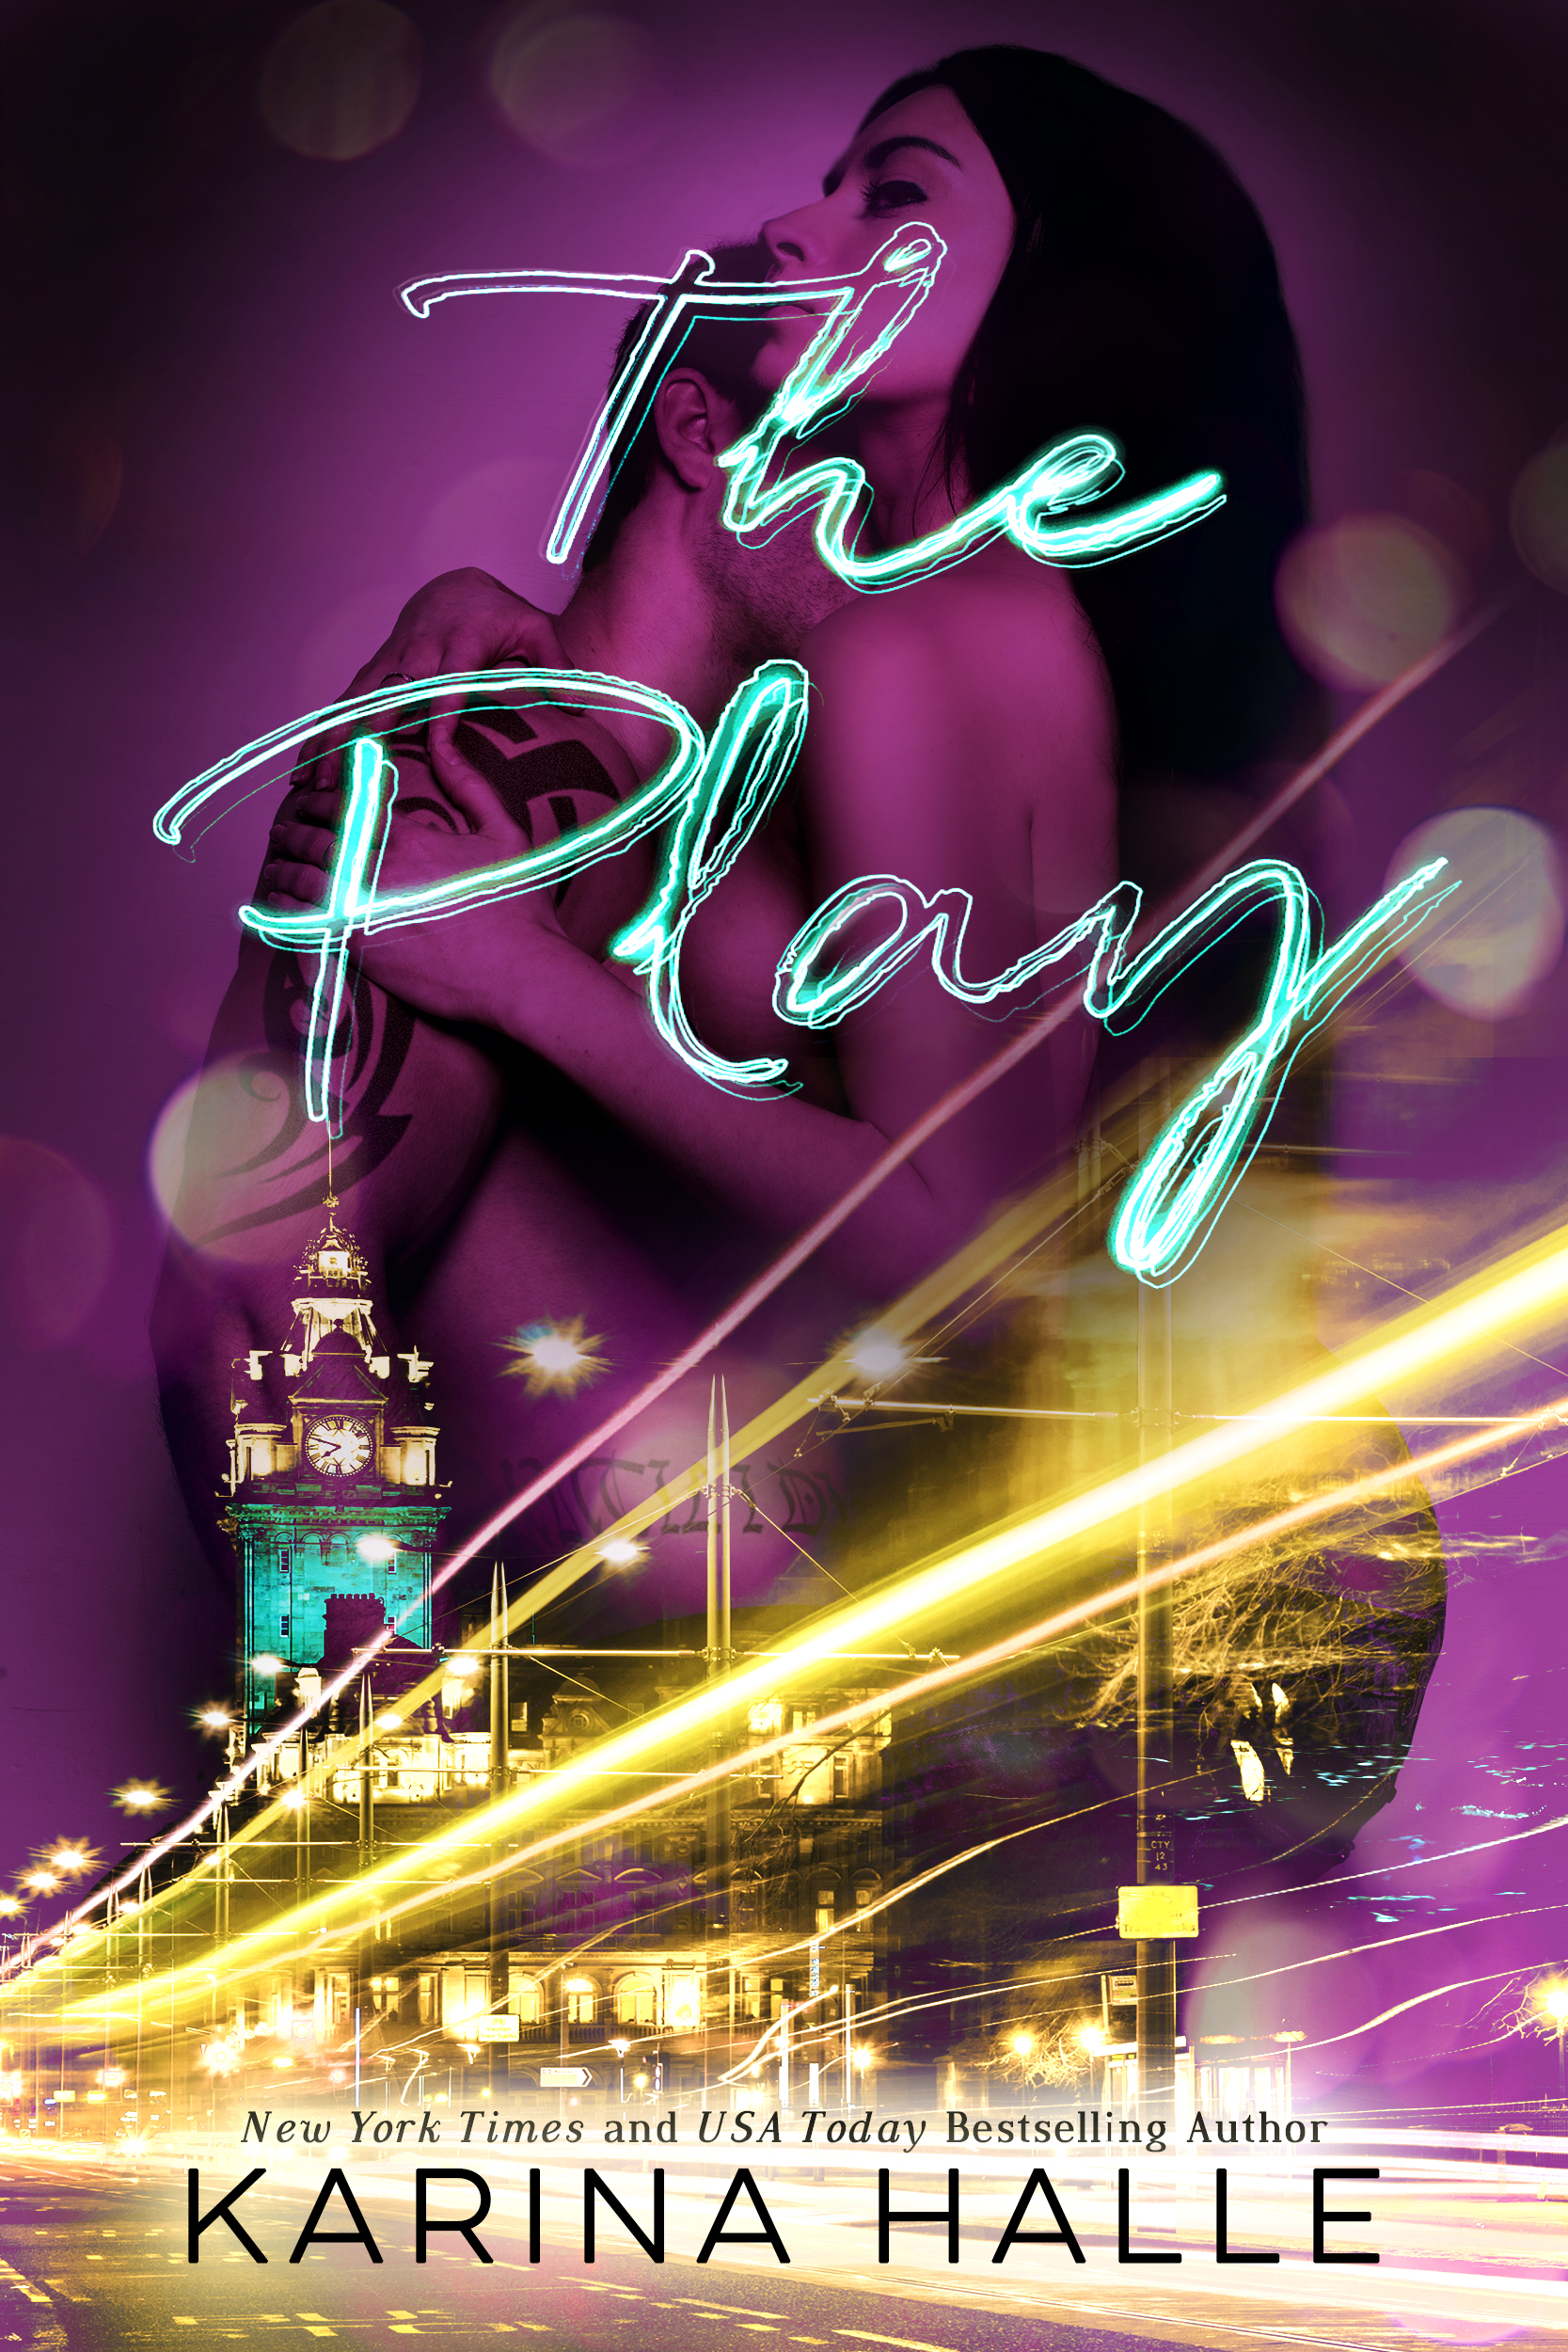 In Review: The Play by Karina Halle